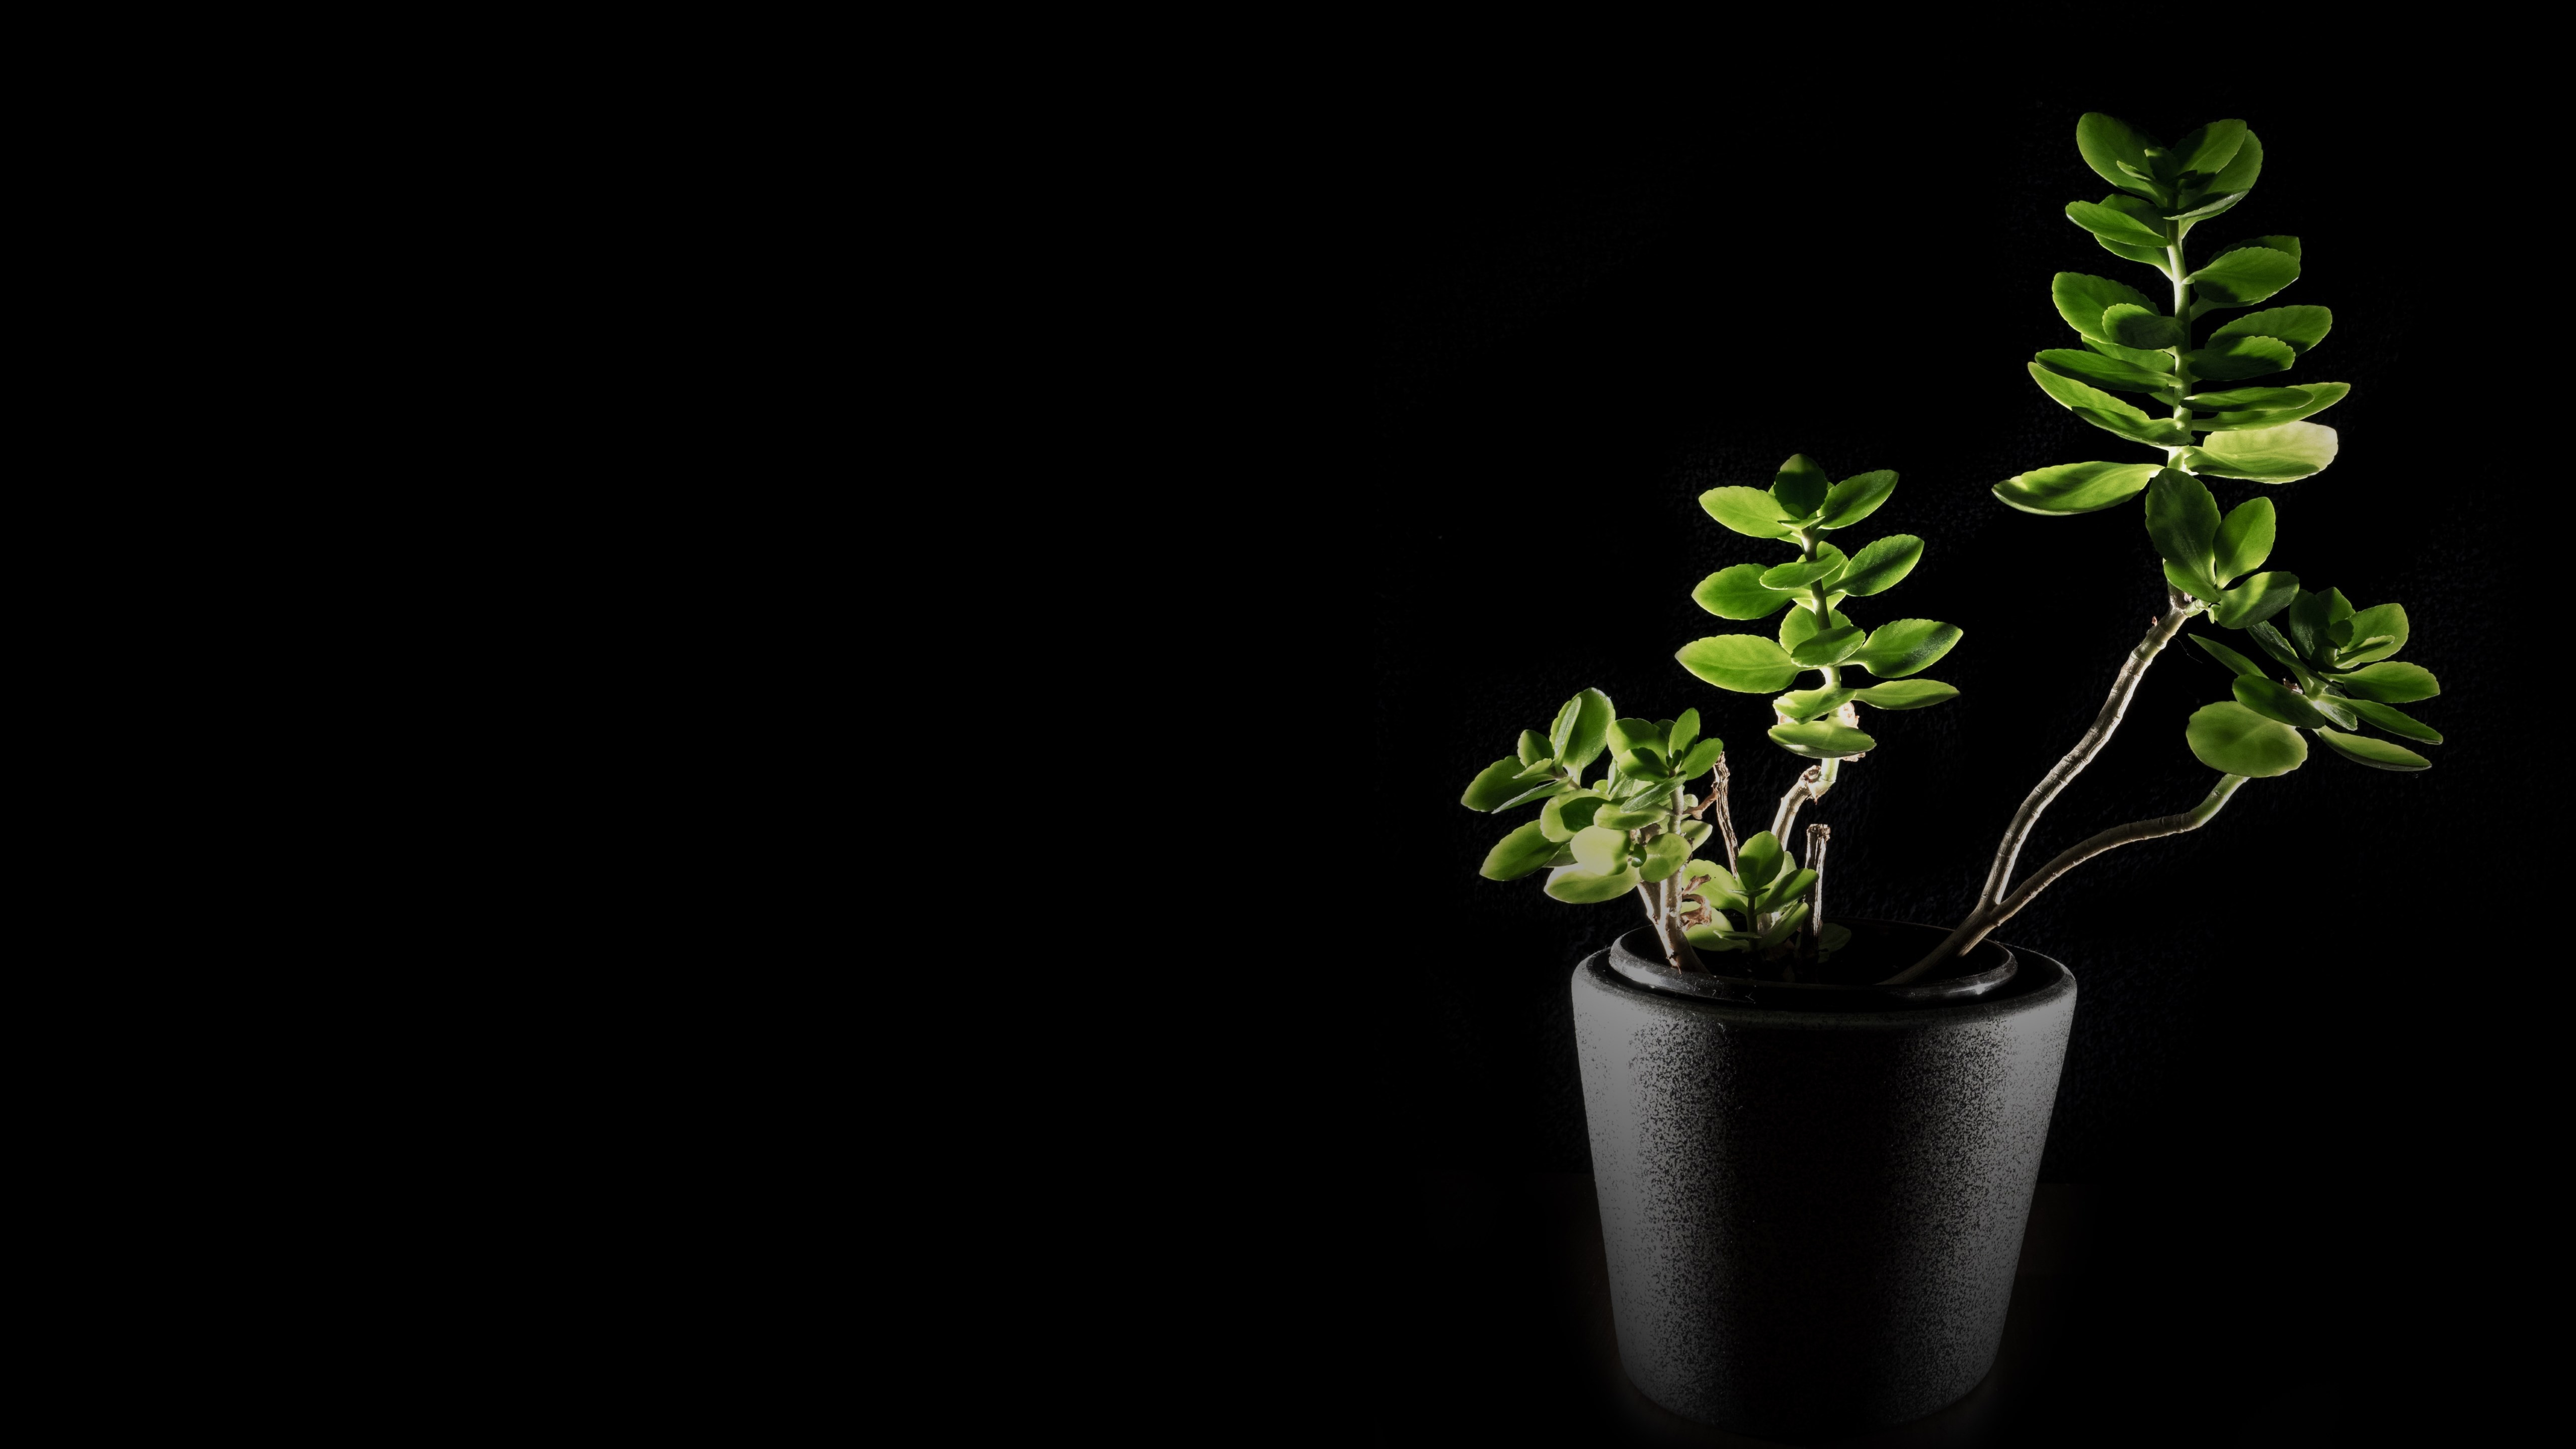 Natural green in darkness wallpaper 5120x2880